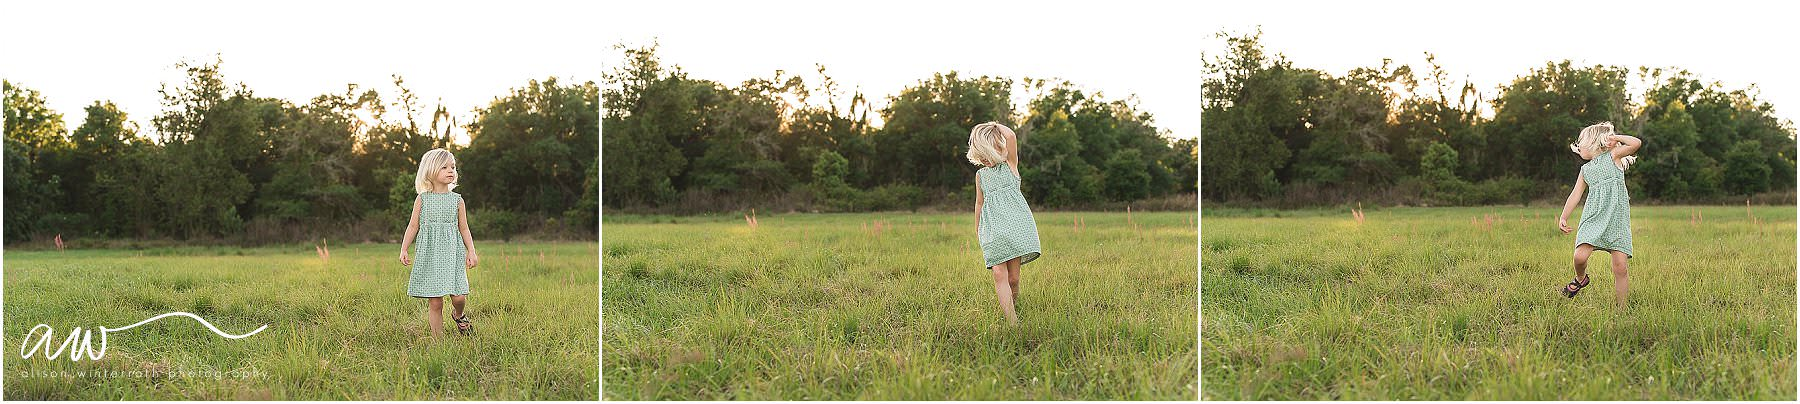 A young girl twirling in an open field